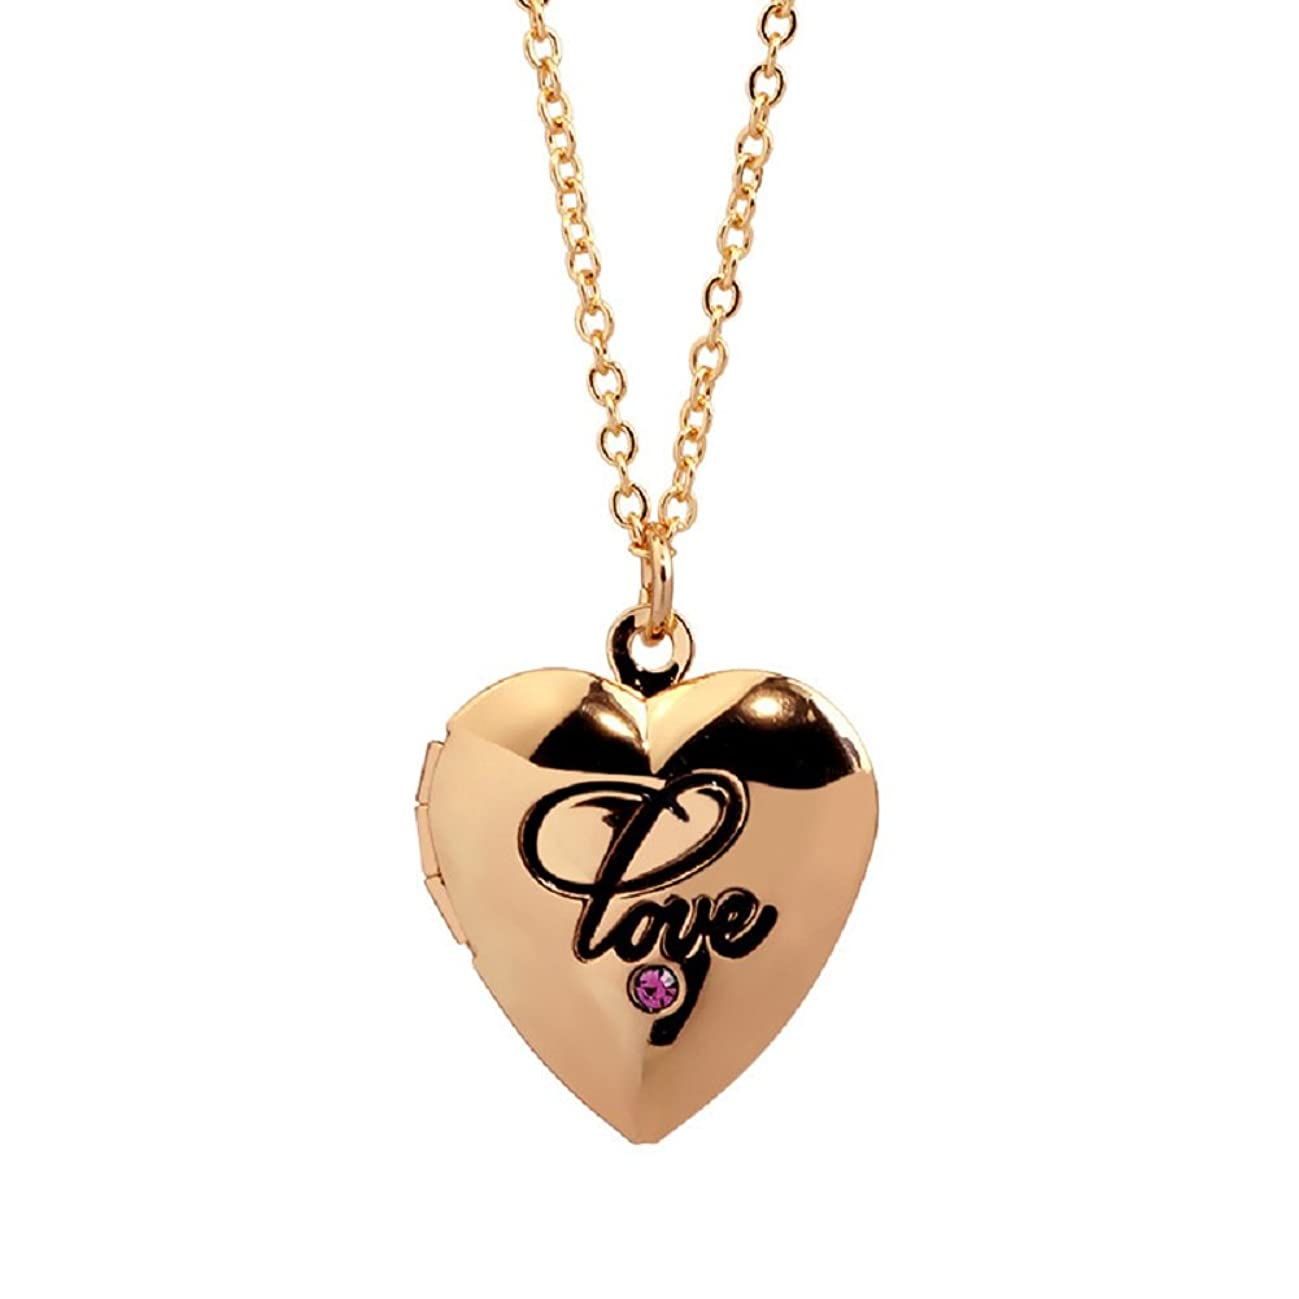 Power Wing Heart Shaped Engraved Love Lockets Necklaces That Hold Pictures Rose Gold Plated Locket Christmas Day Gifts Jewelry